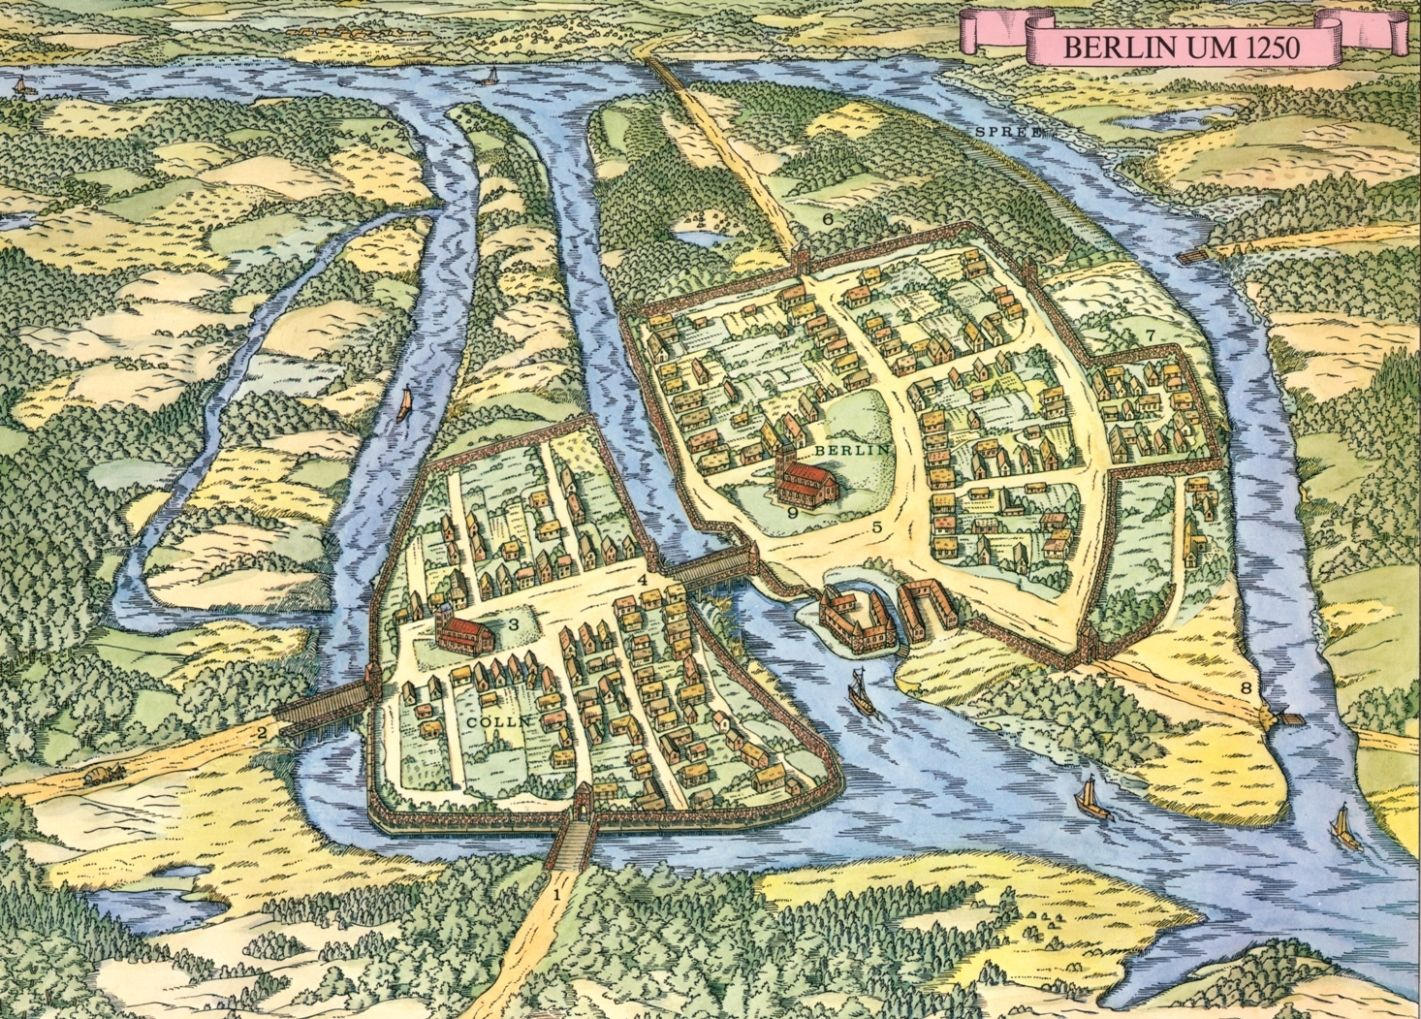 Map of Berlin, 13th century | Berlin geschichte, Berlin